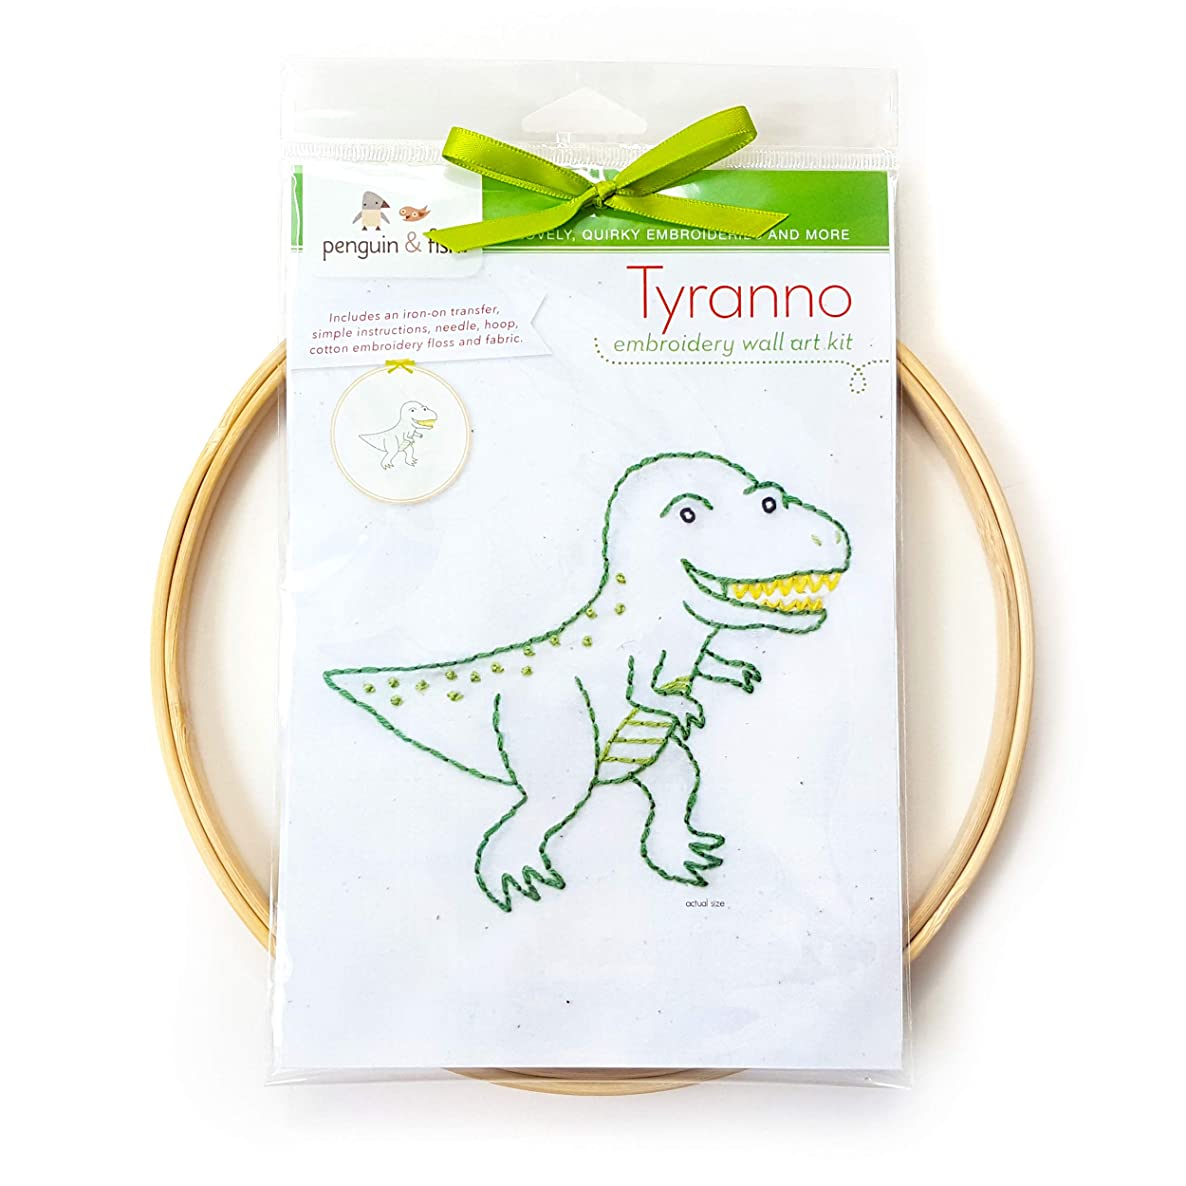 Tyranno Dinosaur Hand Embroidery DIY Craft Wall Art Kit, Beginner Learn to Embroider Backstitch, French Knot, 8 inch Hoop, 6 Strand Cotton Floss Thread, Needle, Kids Crafts Boys Girls